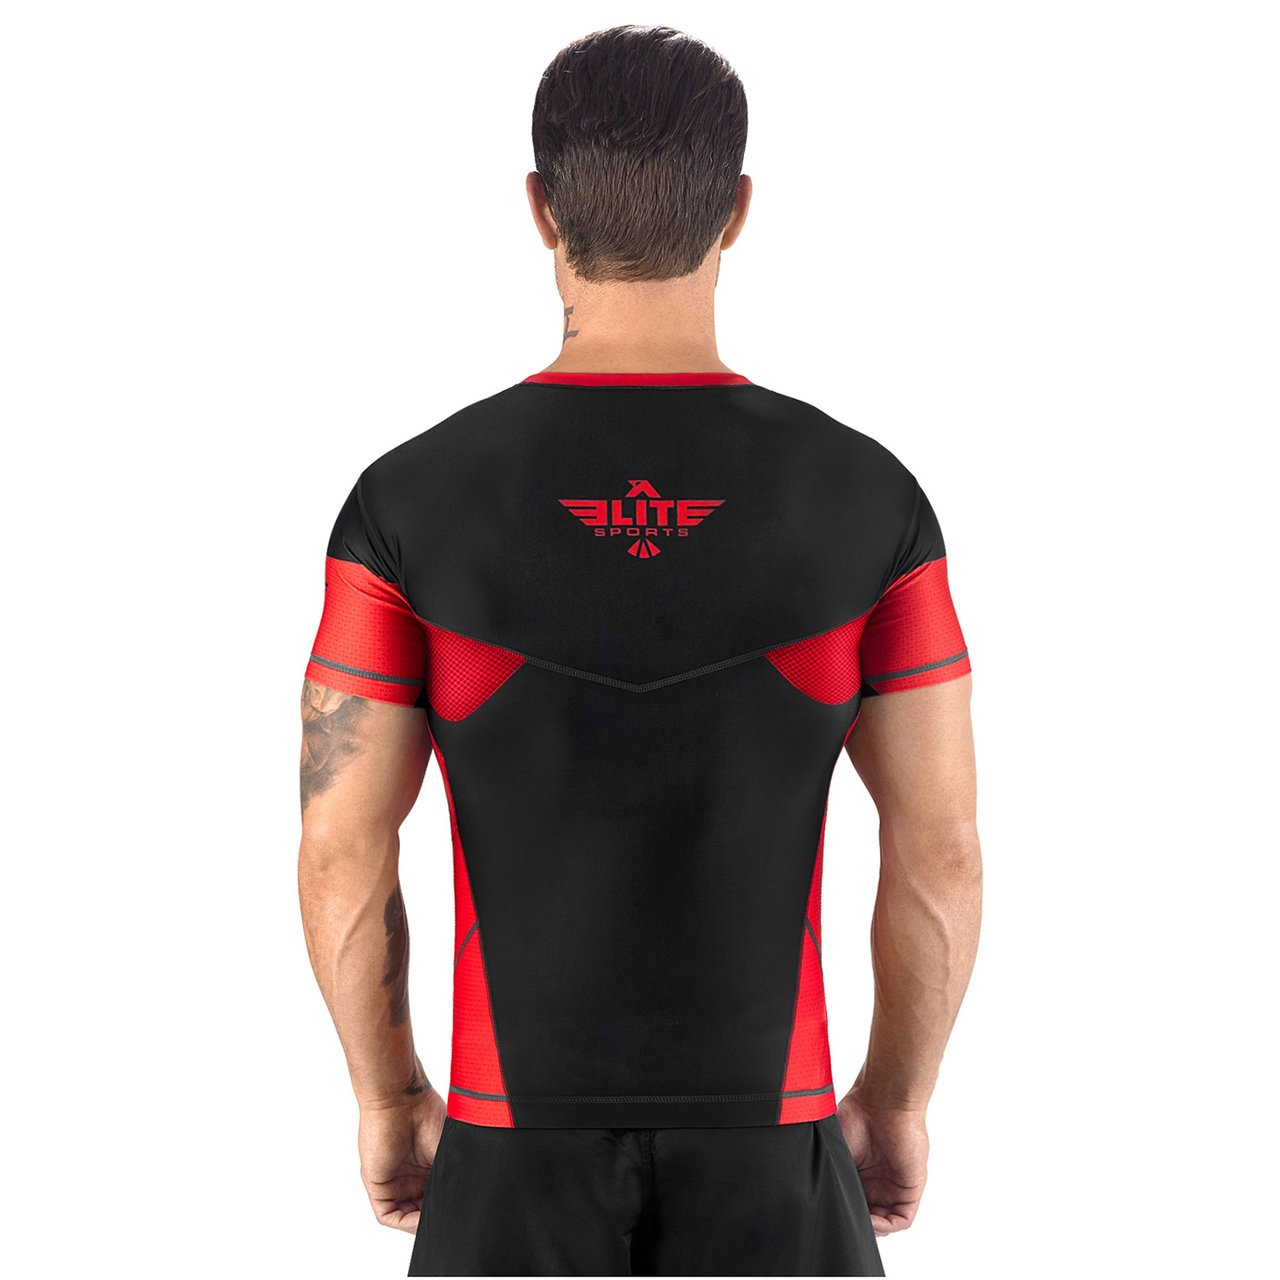 Load image into Gallery viewer, Elite Sports Honey Comb Sublimation Black/Red Short Sleeve Judo Rash Guard